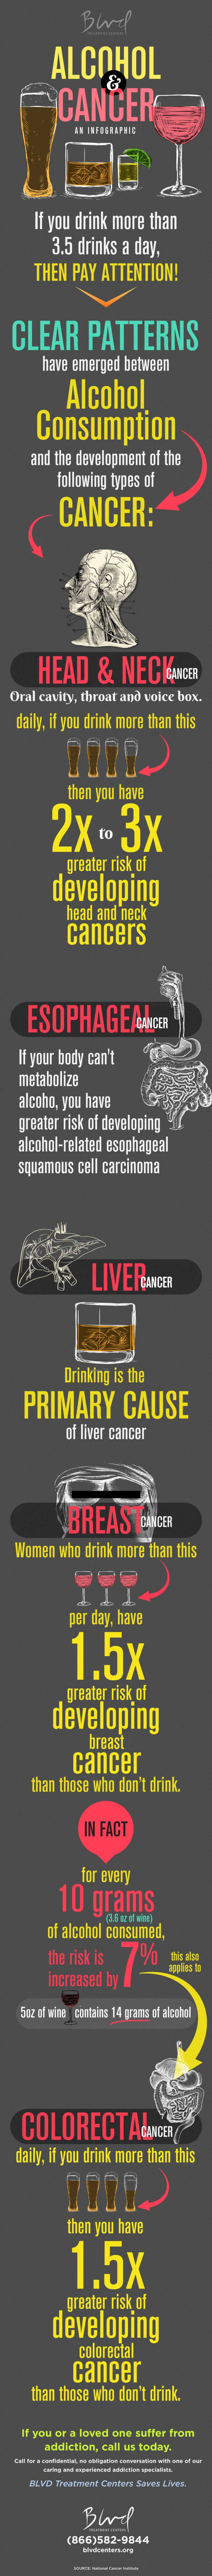 alcohol-and-cancer-infographic-e1491865432207